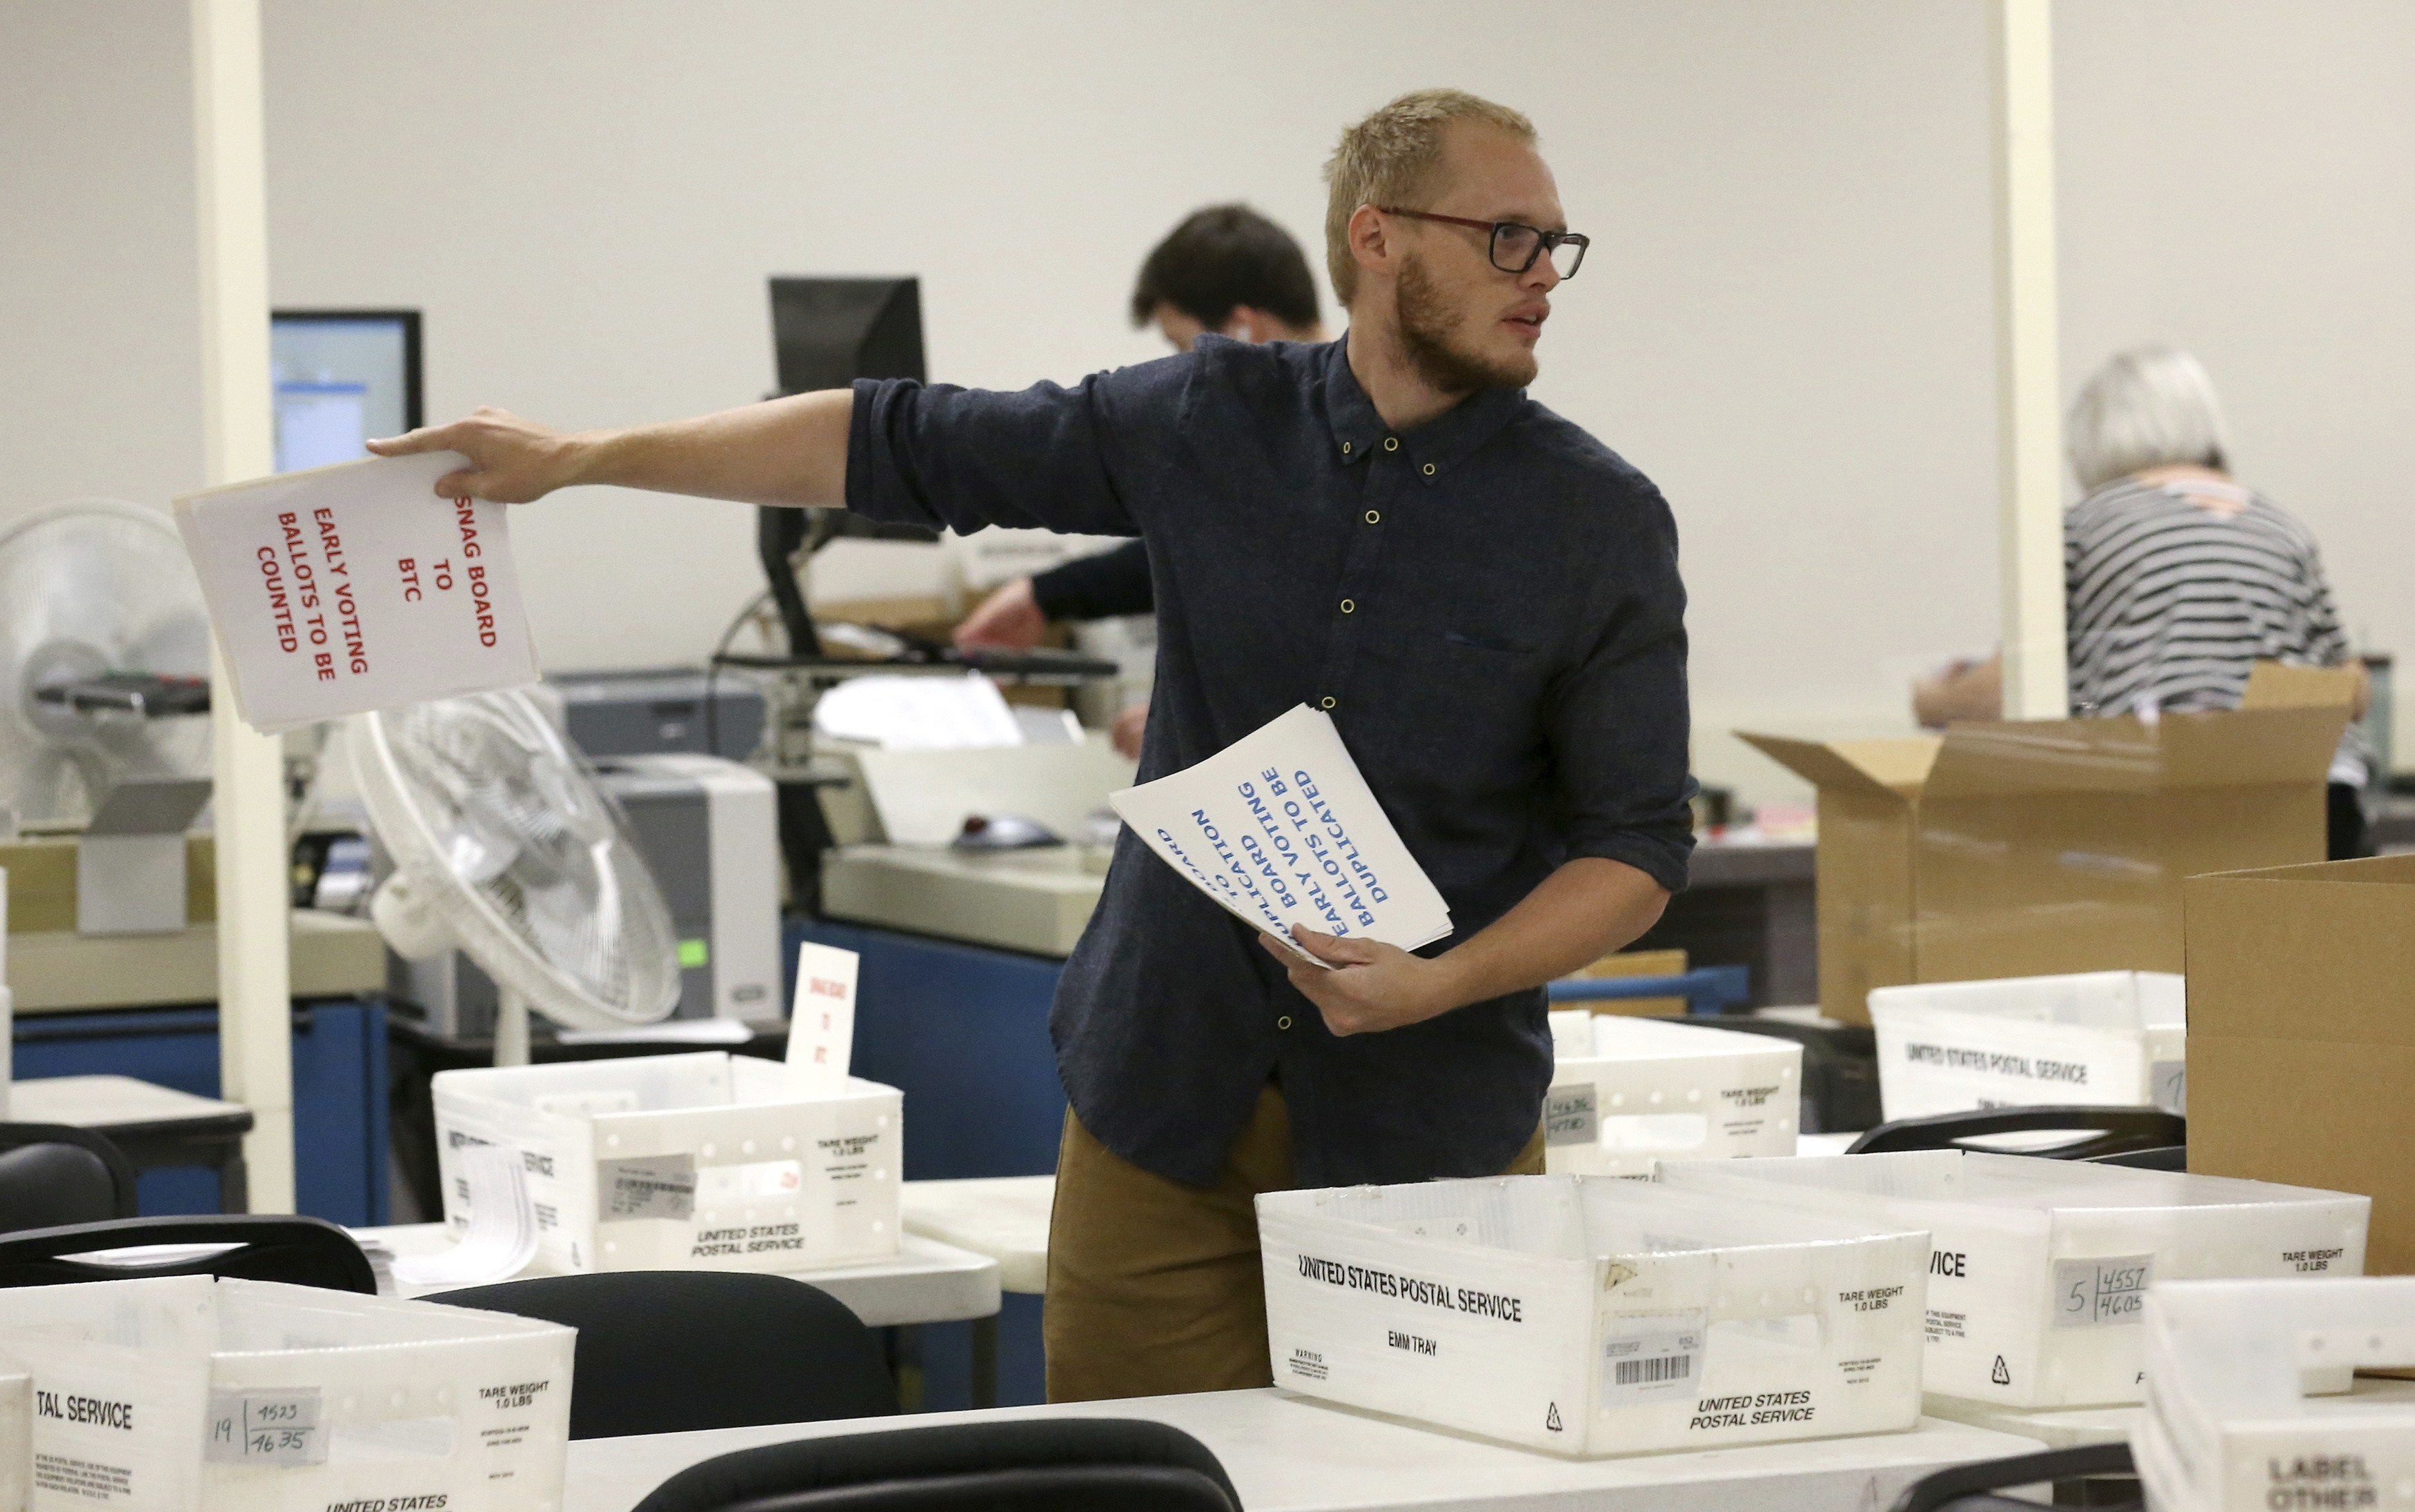 A worker prepares volunteers to verify ballots at the Maricopa County Recorder's Office Thursday, Nov. 8, 2018, in Phoenix. (AP Photo/Ross D. Franklin)